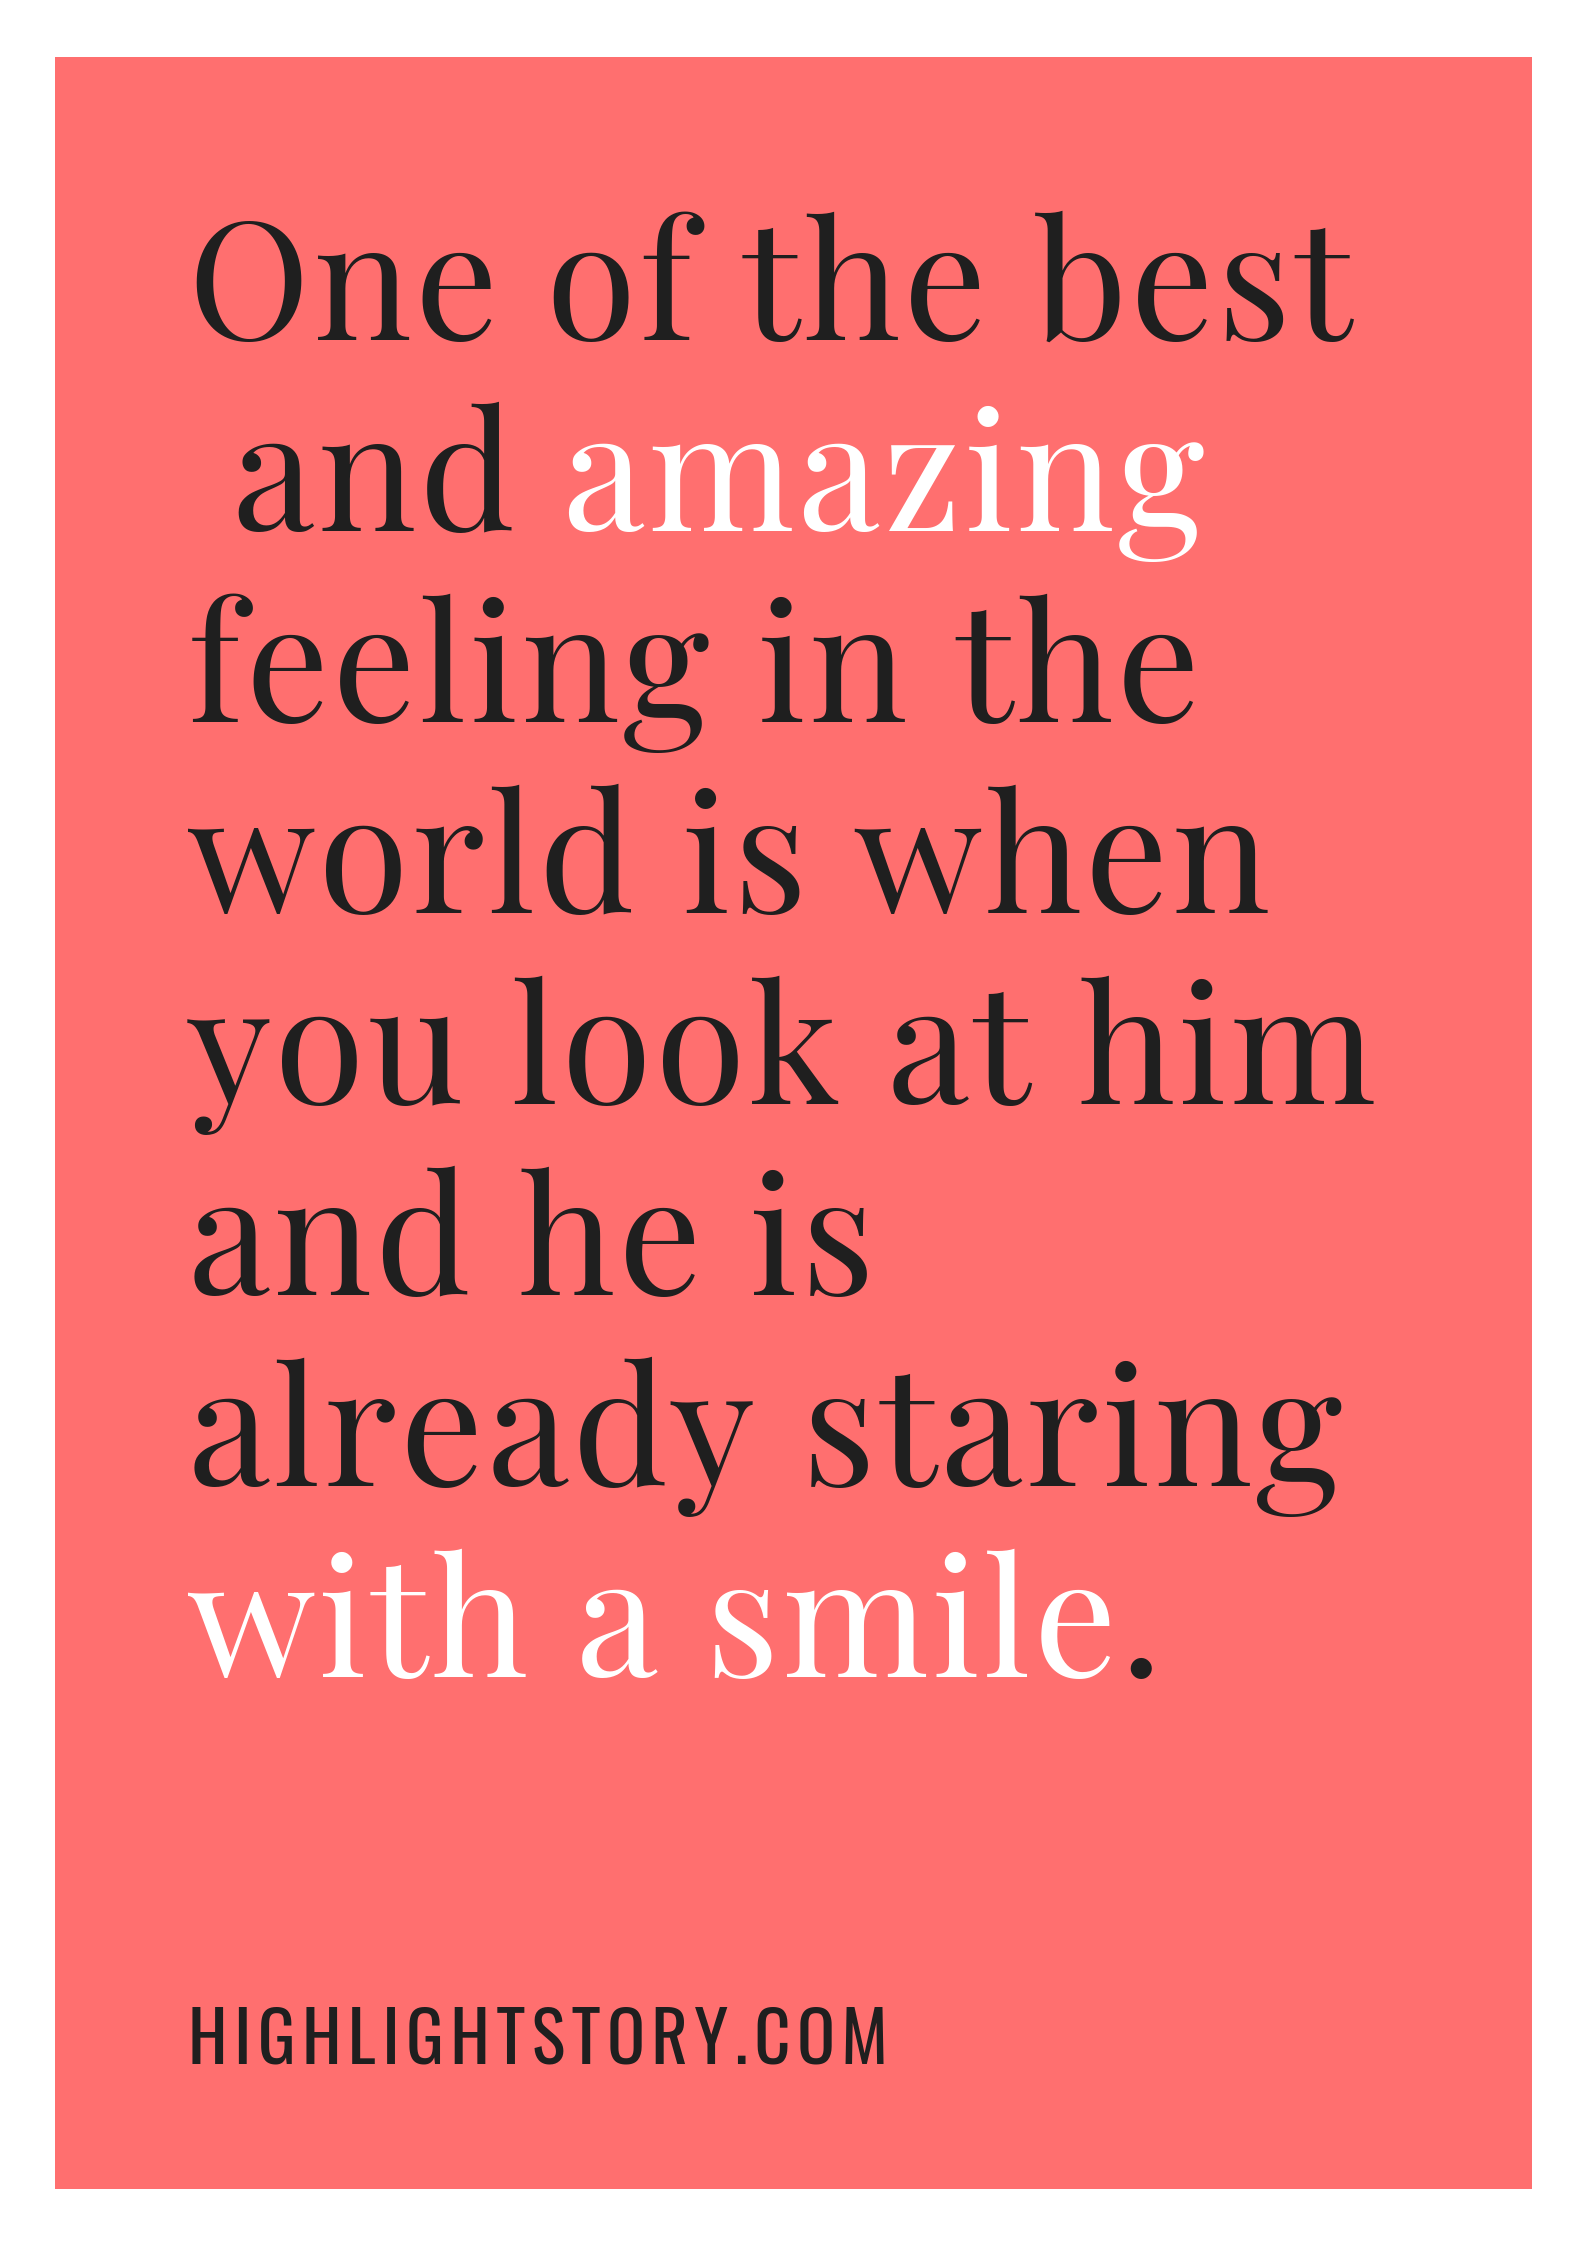 One of the best and amazing feeling in the world is when you look at him and he is already staring with a smile.